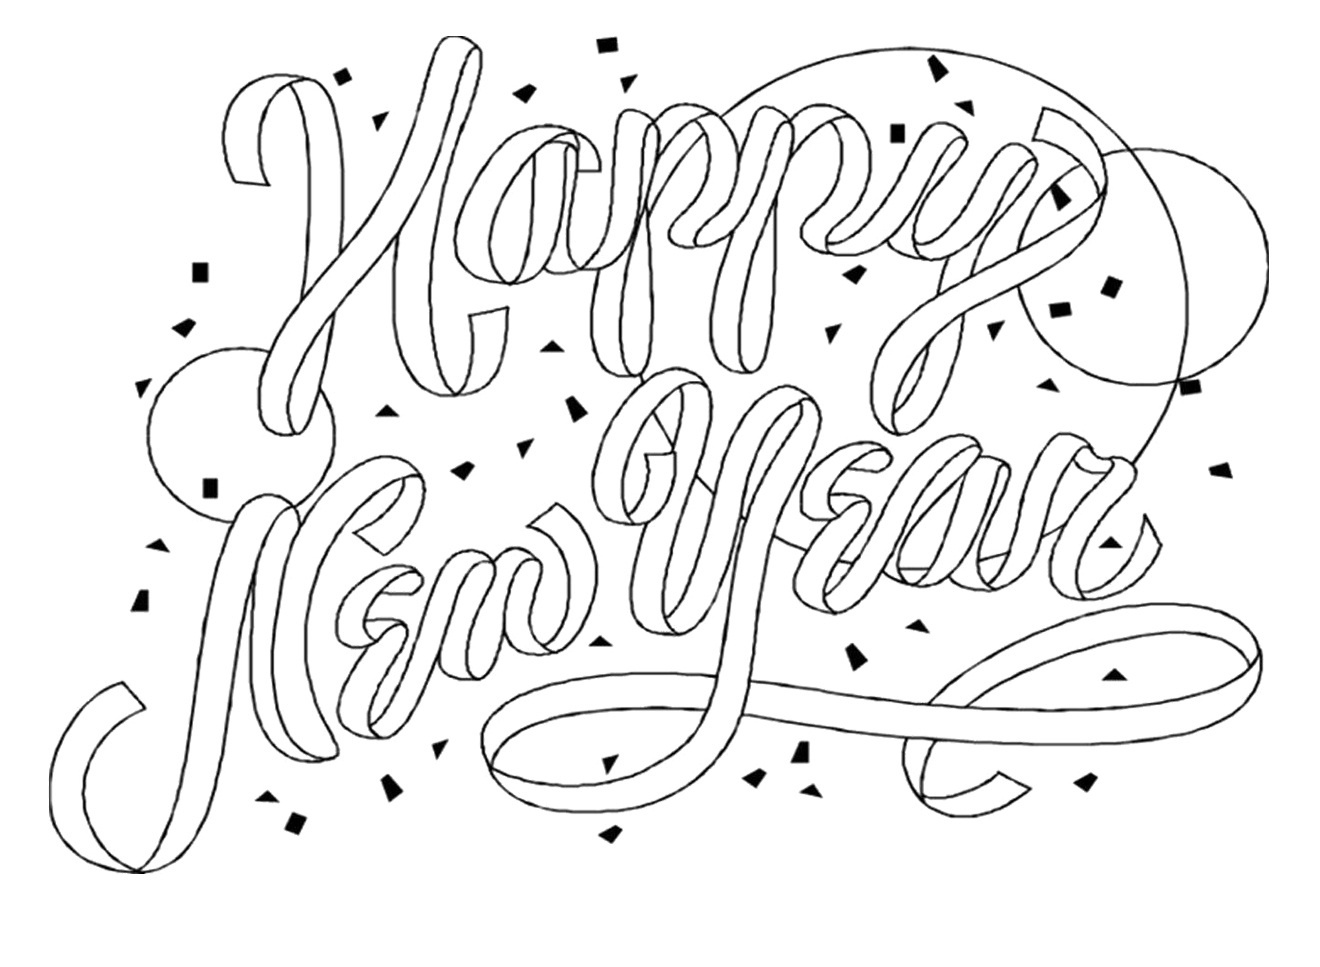 Free Printable New Years Coloring Pages For Kids - New Year Coloring Pages Free Printables